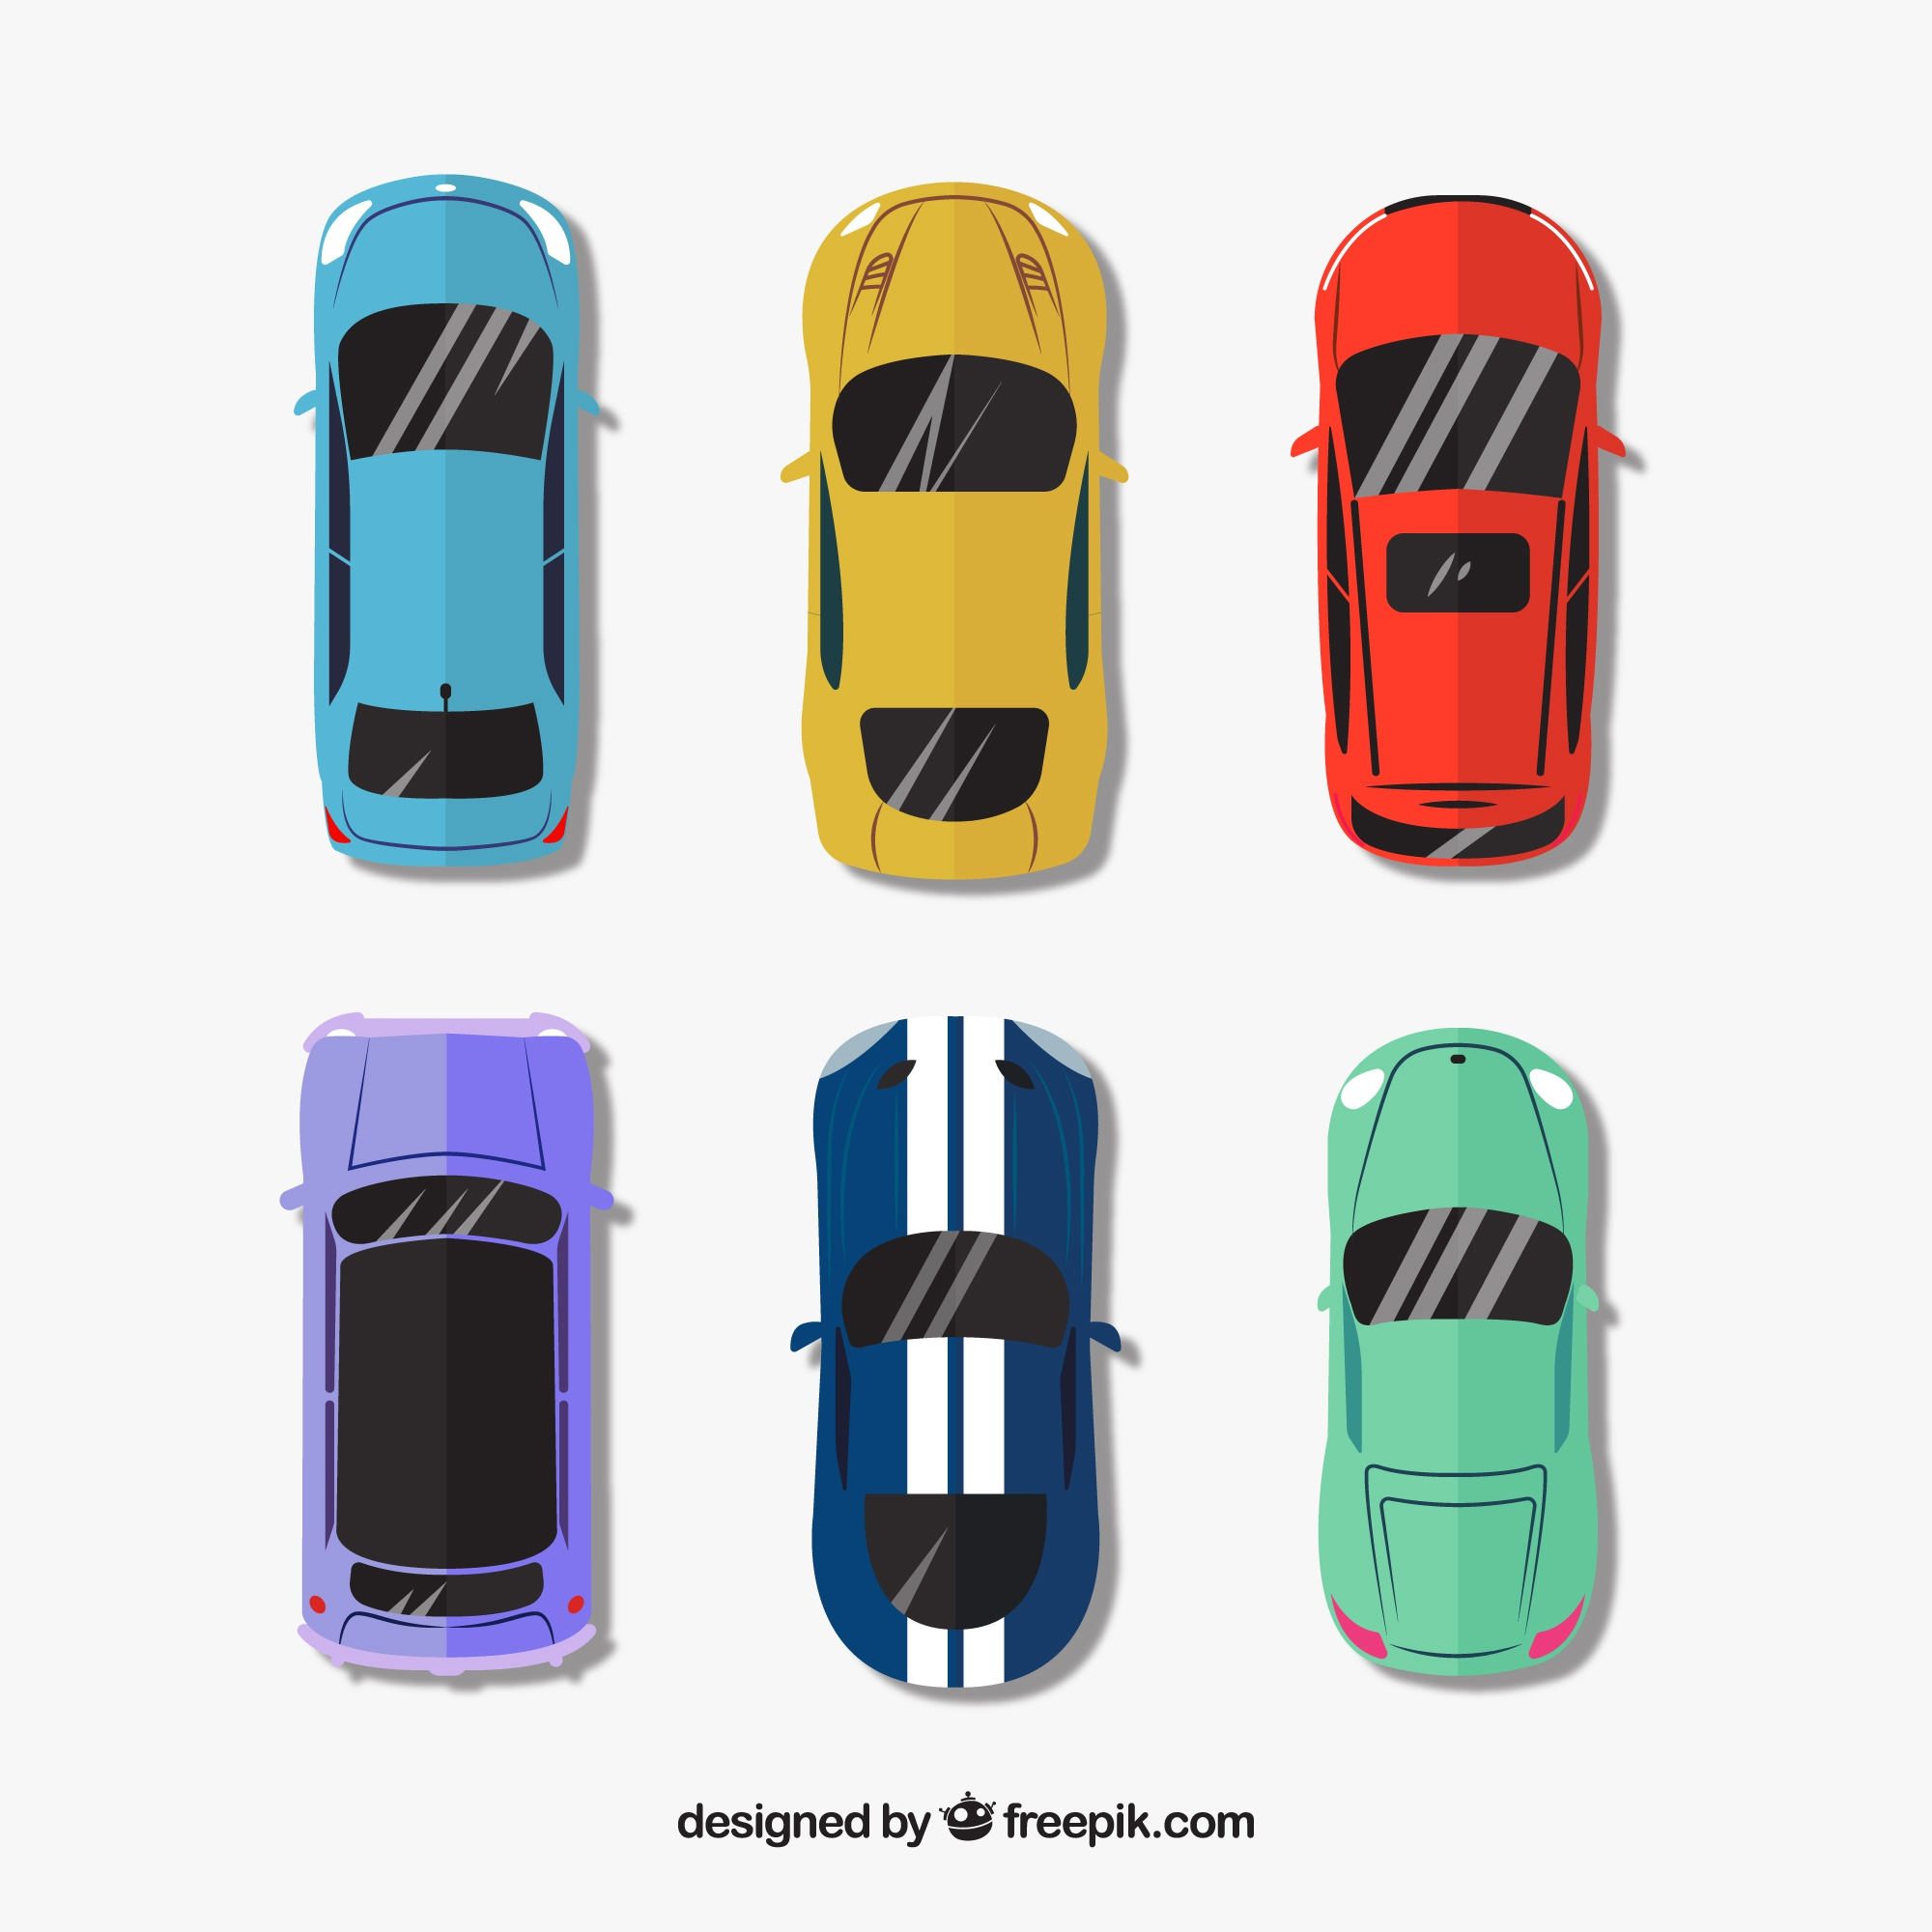 Top view of six different cars with reflecting windshields